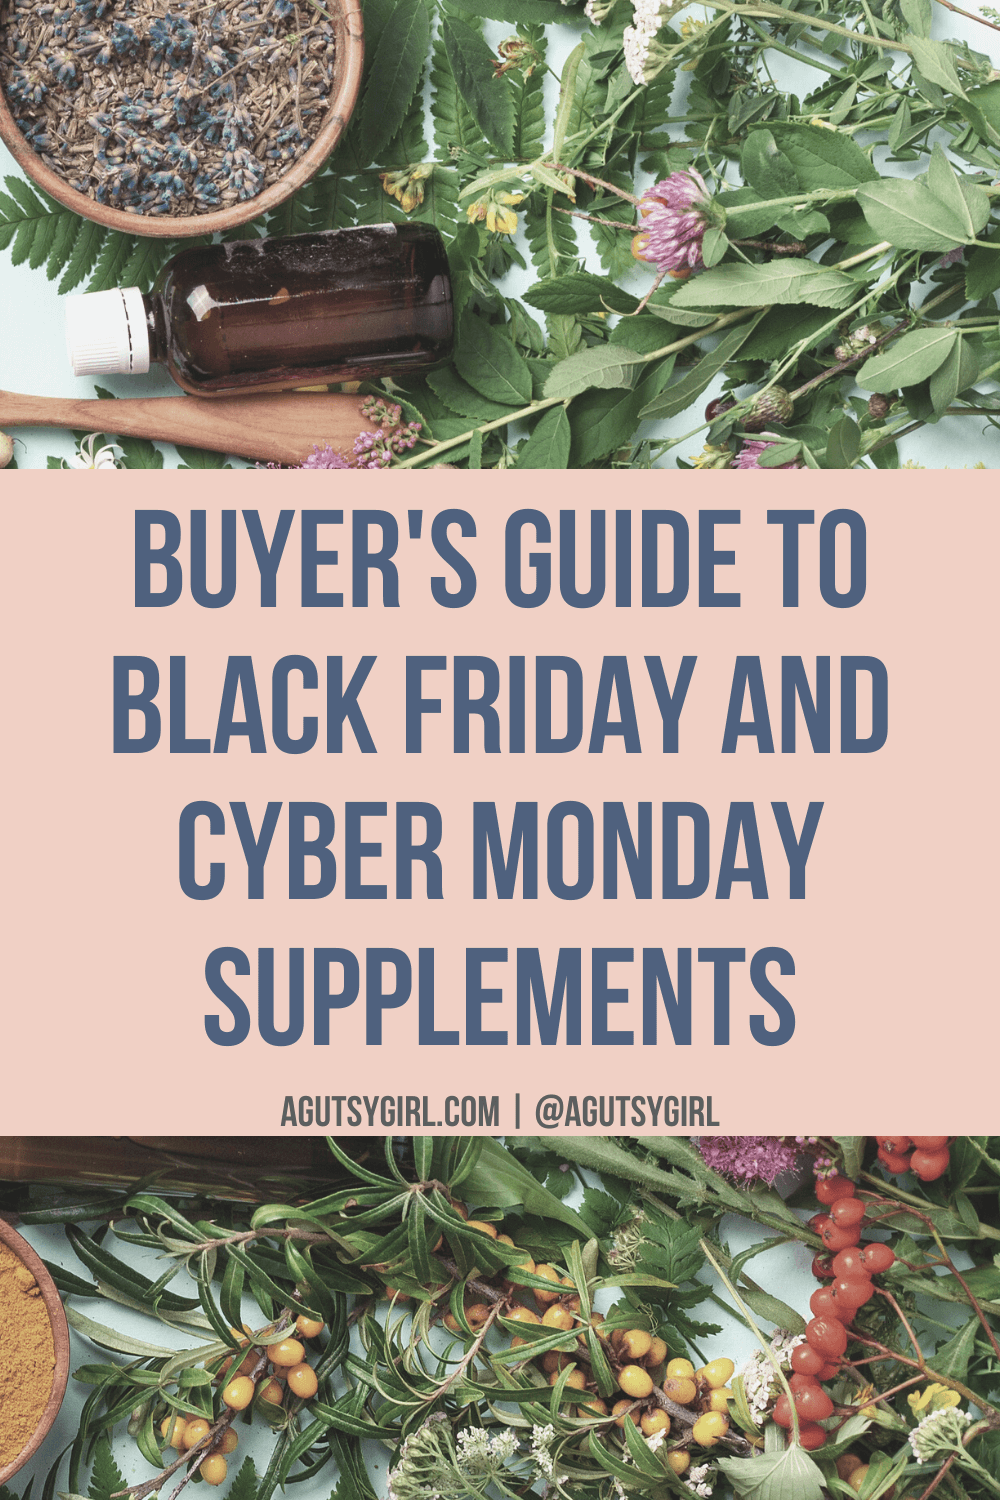 Buyer's Guide to Black Friday and Cyber Monday Supplements agutsygirl.com #guthealth #supplements #supplementsforwomen